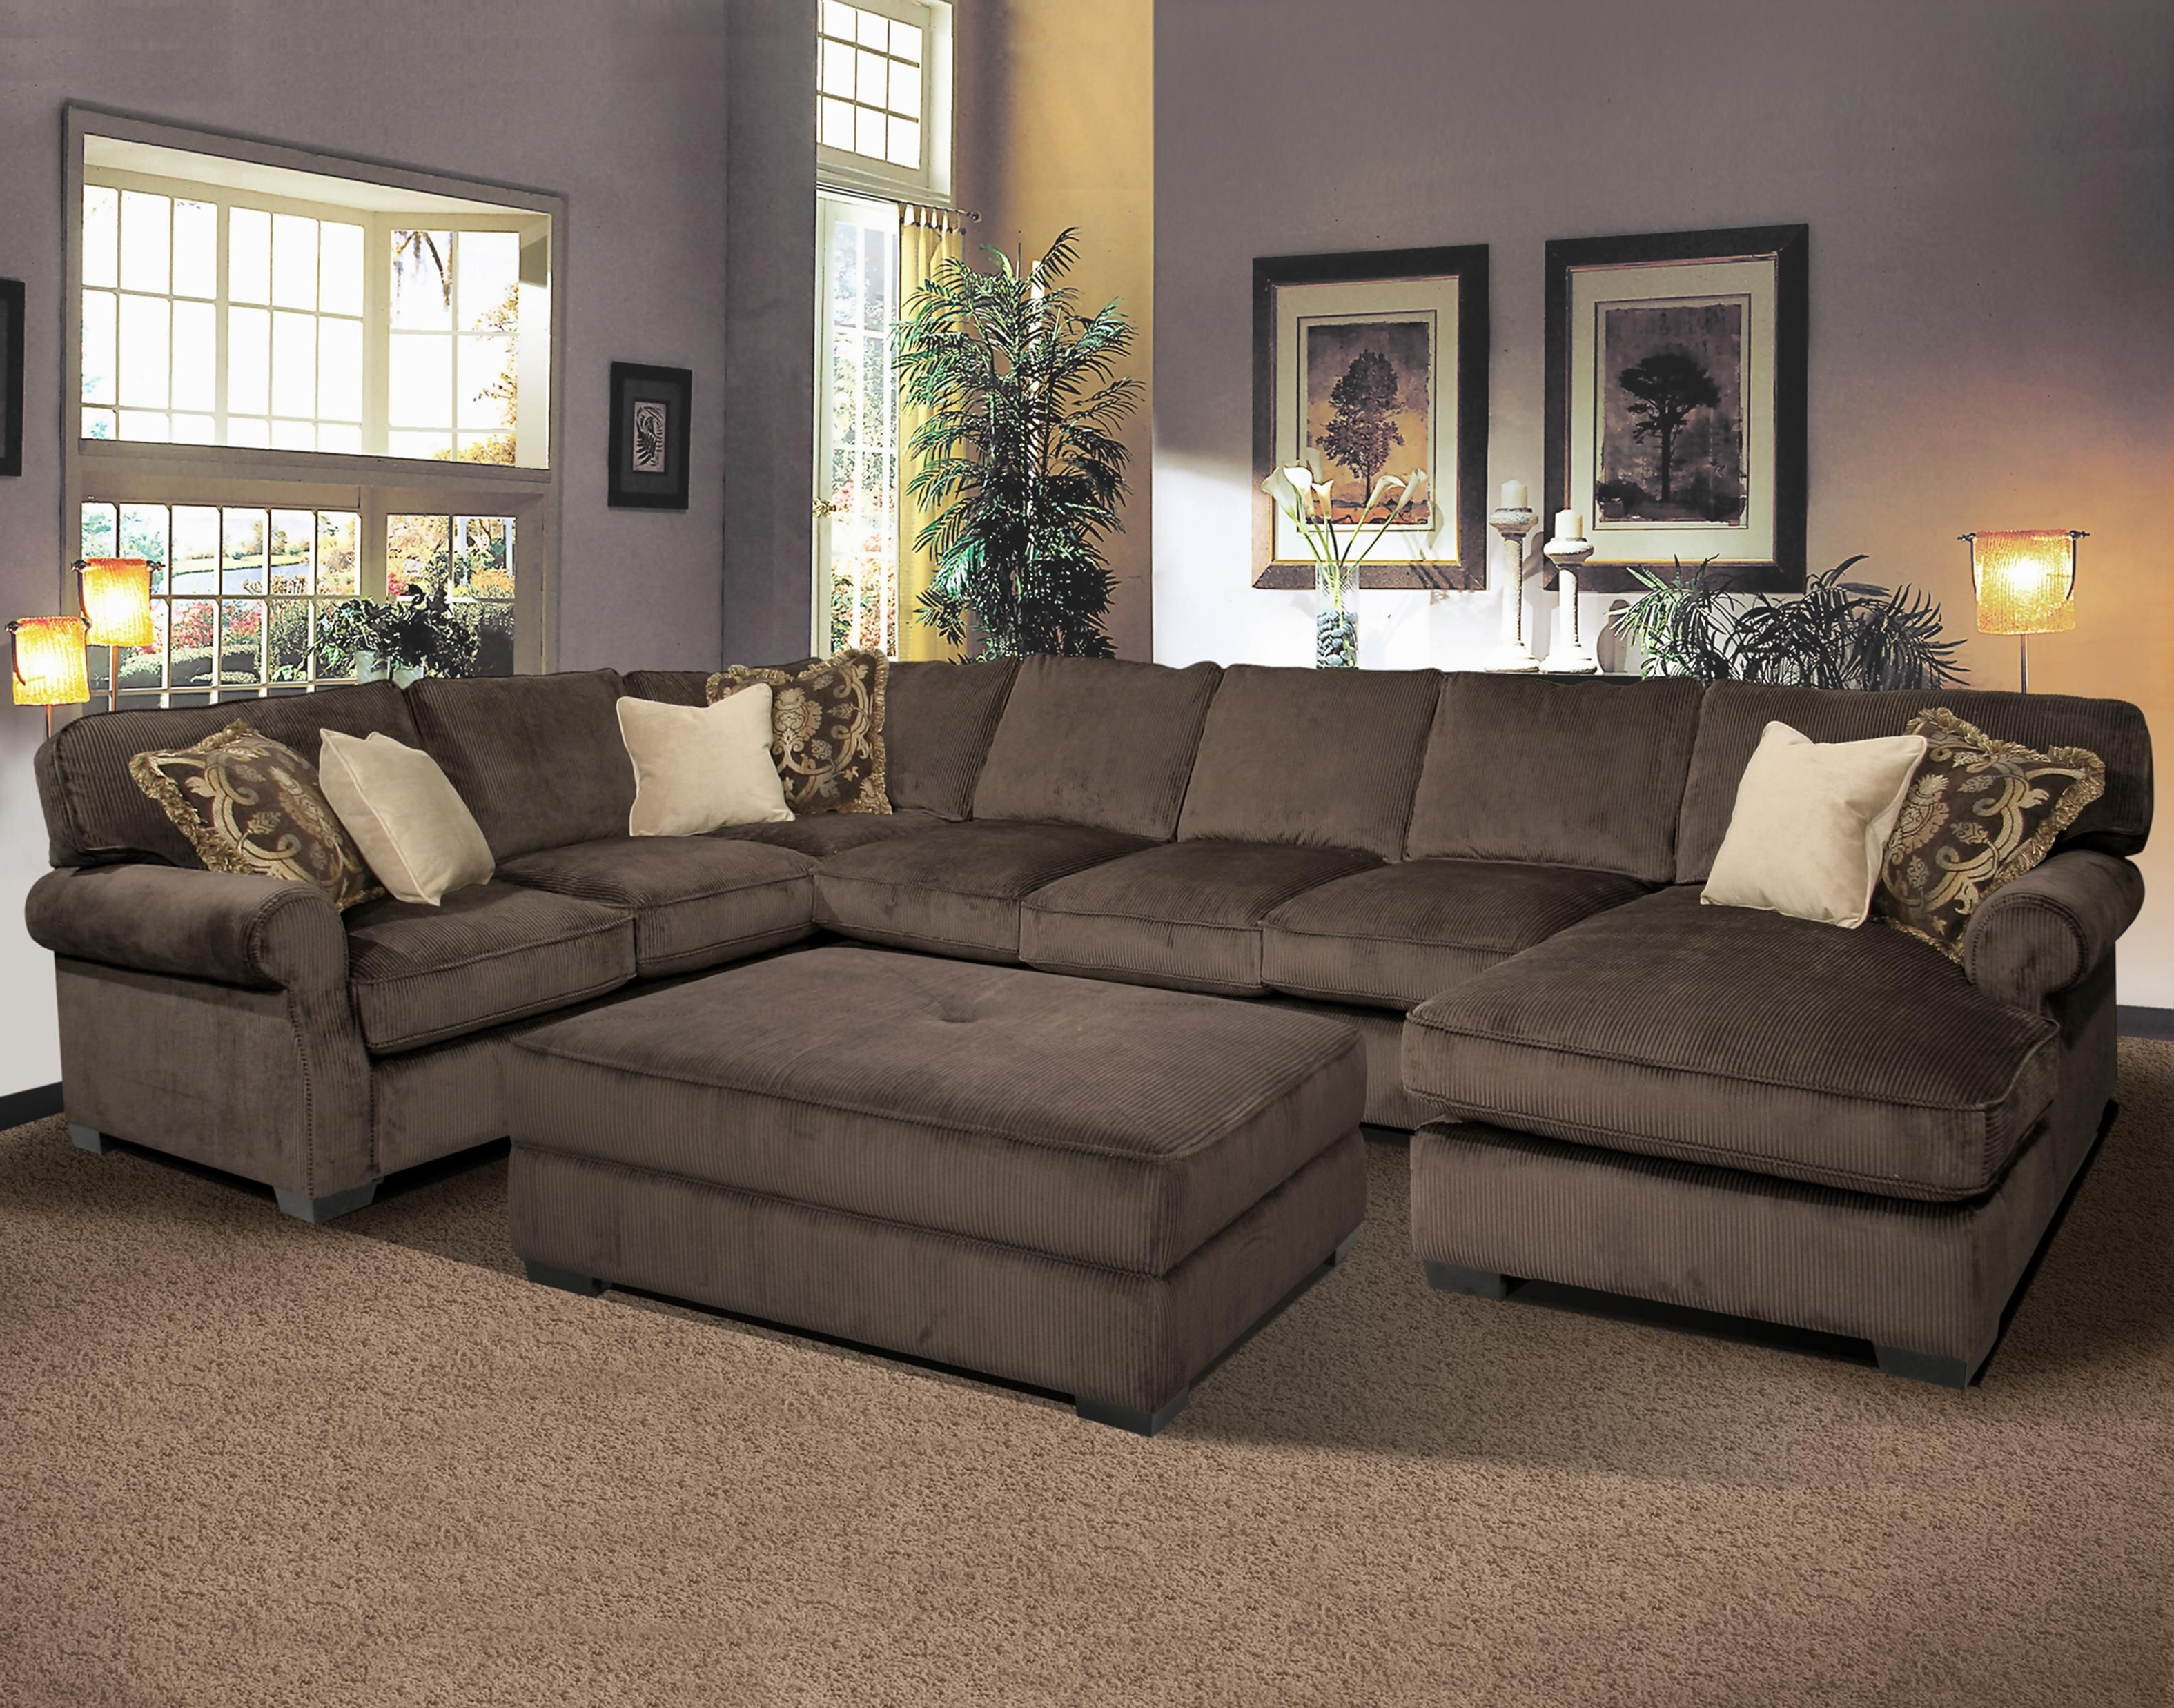 2018 Grand Island Oversized Cocktail Ottoman For Sectional Sofa Pertaining To Microfiber Sectional Sofas (View 7 of 20)